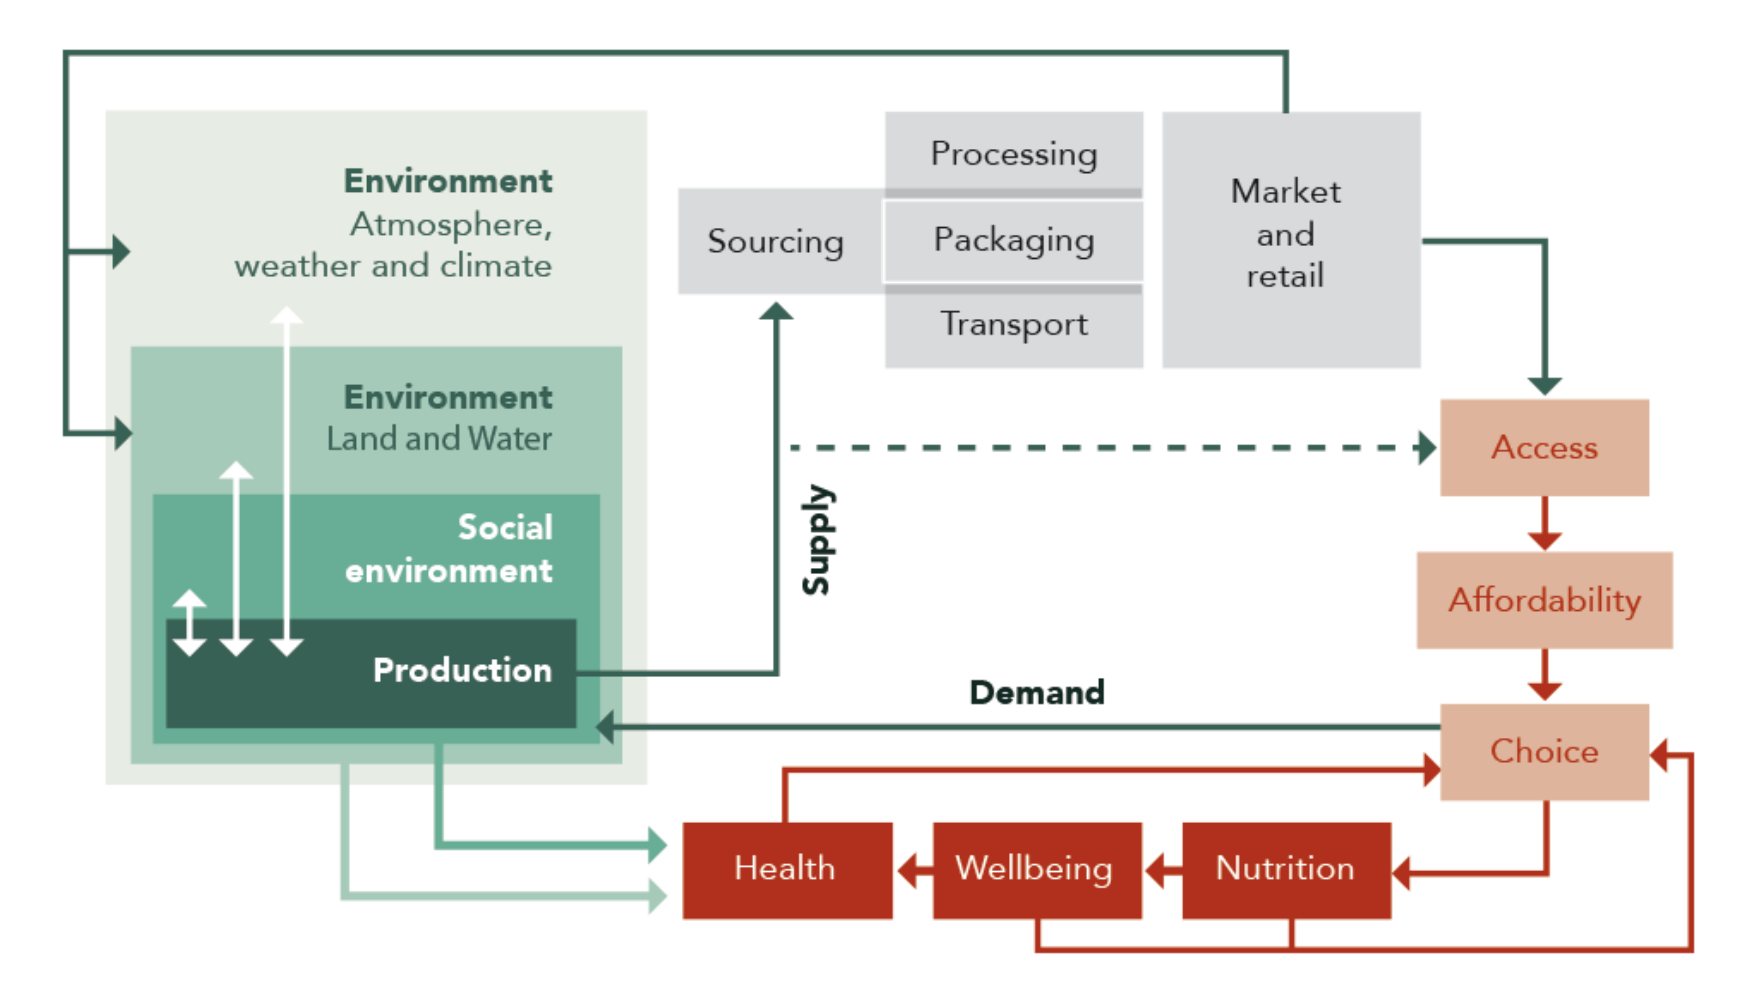 Figure 2: A food system diagram showing some social and environmental influences on the food system.